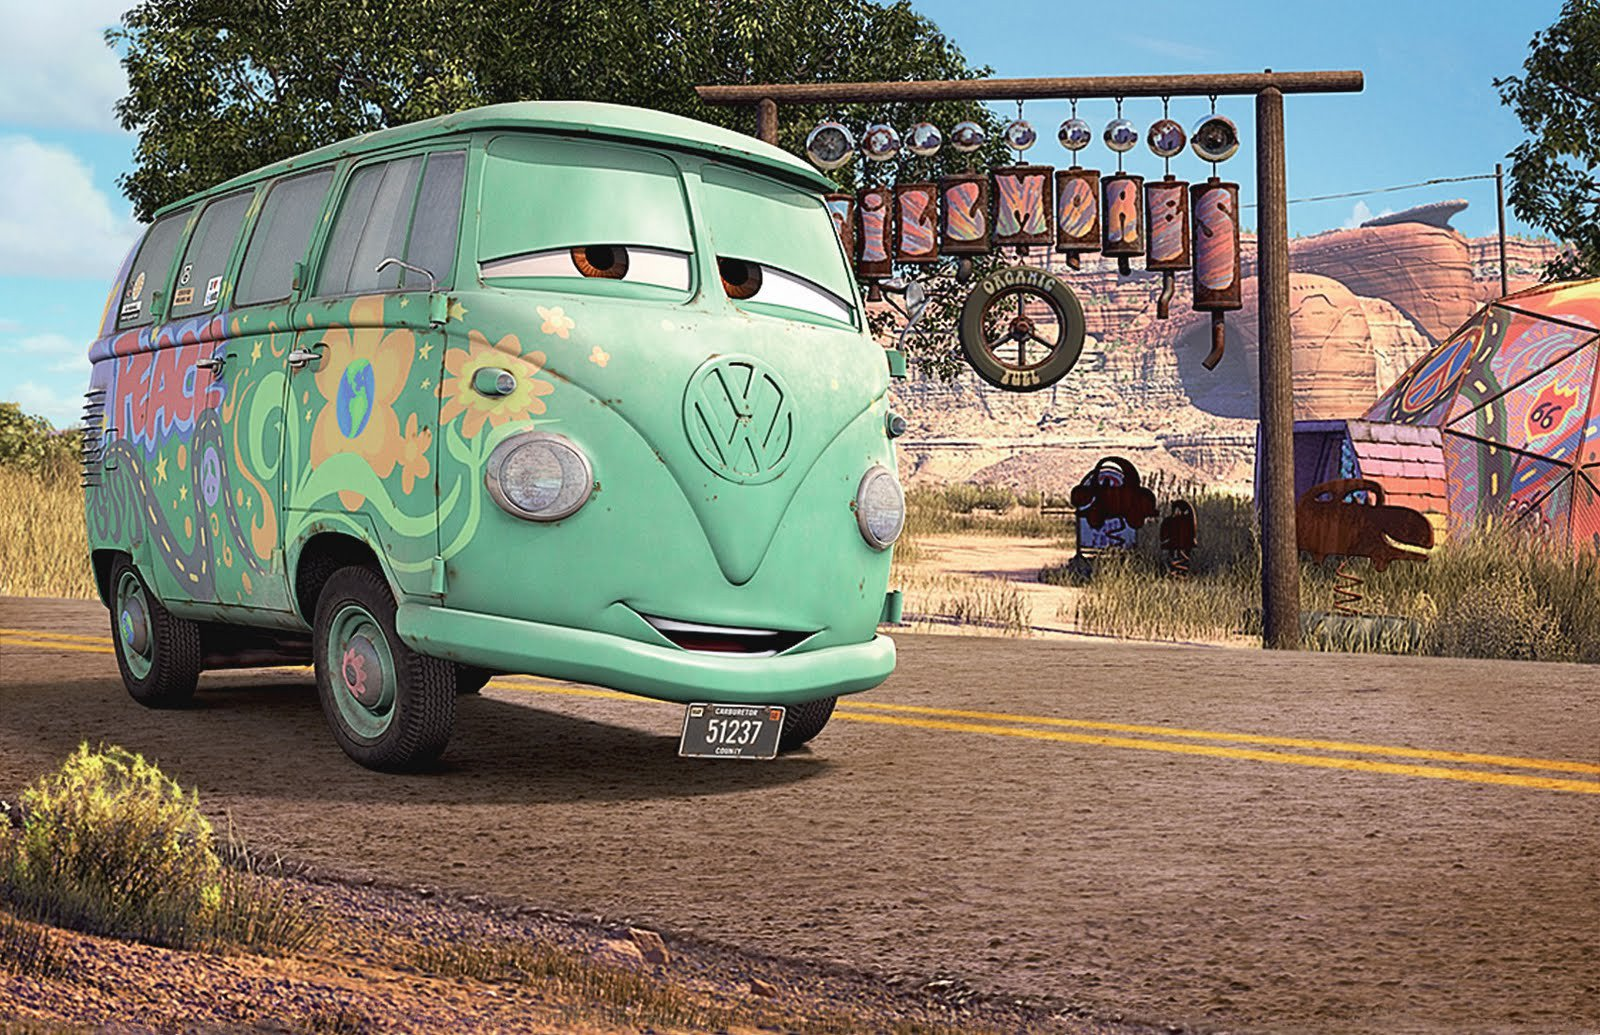 Kombi Type 2 Old Bus Volkswagen Cars Disney Pixar Wallpaper Cars Vw Bus 1600x1035 Download Hd Wallpaper Wallpapertip